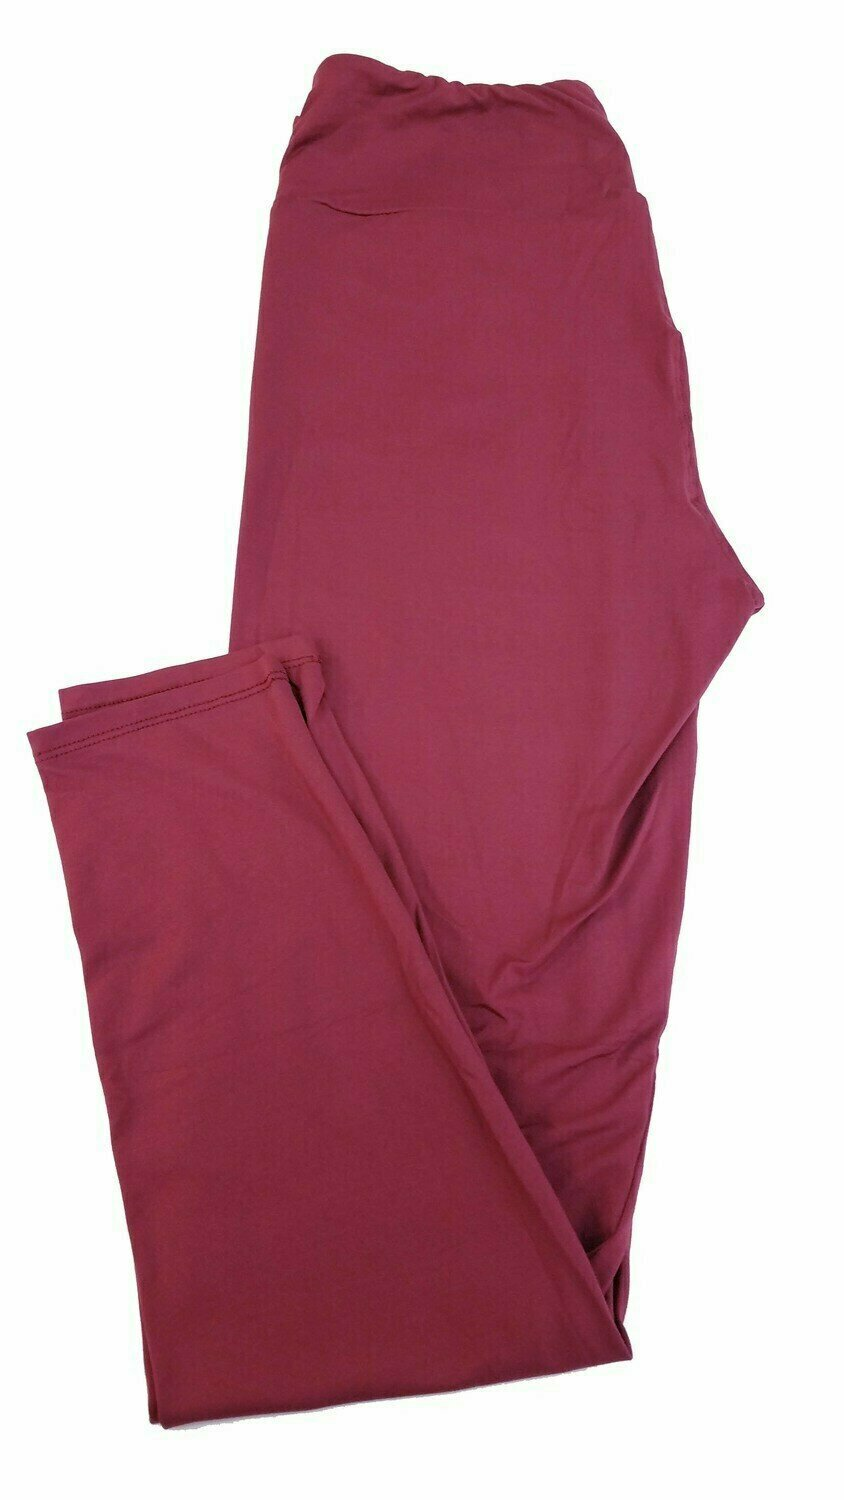 One Size (OS) Solid Roan Rouge LuLaRoe Adult Womens Leggings fit Sizes 2-10